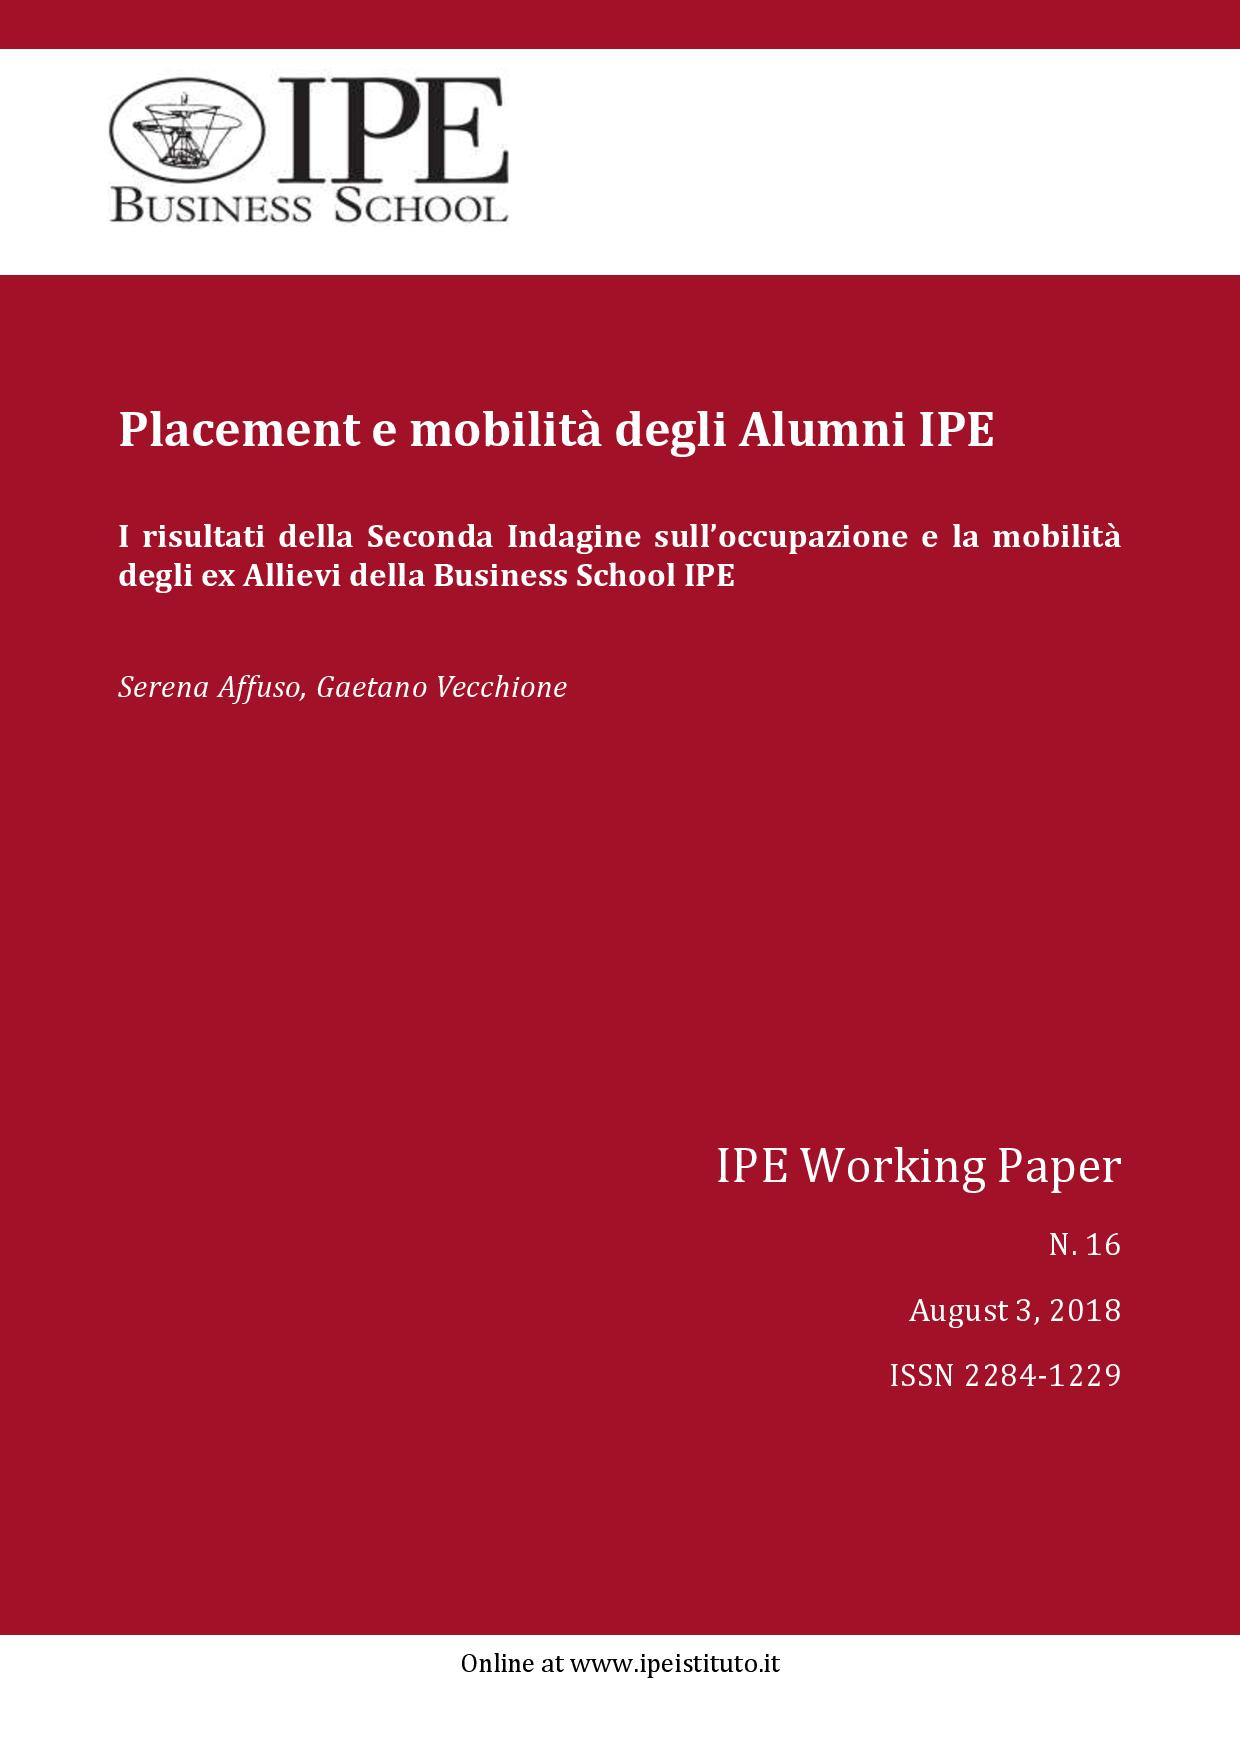 IPE Working Paper N.16/2018